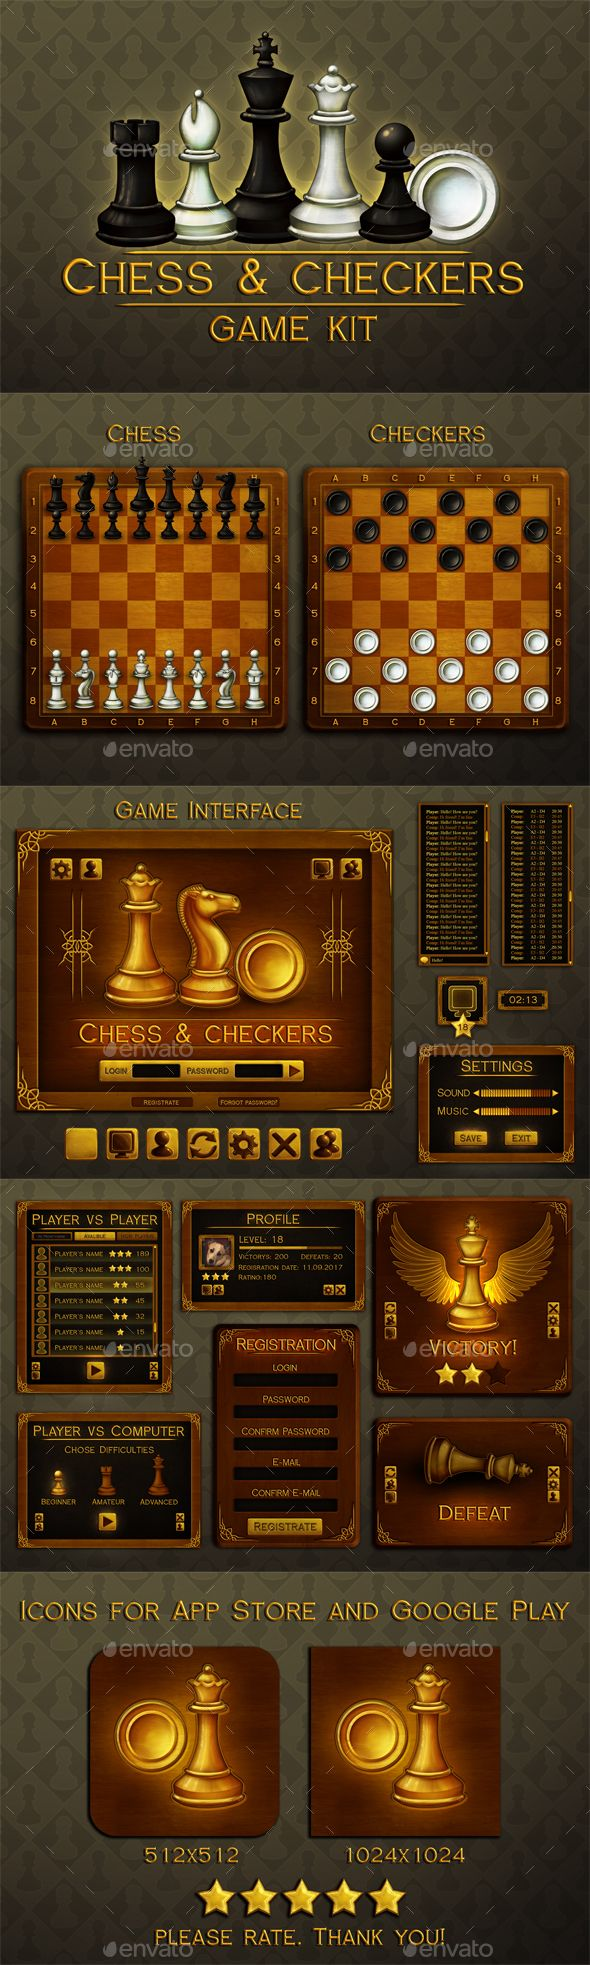 Chess and Checkers Game Assets - Game Kits Game Assets